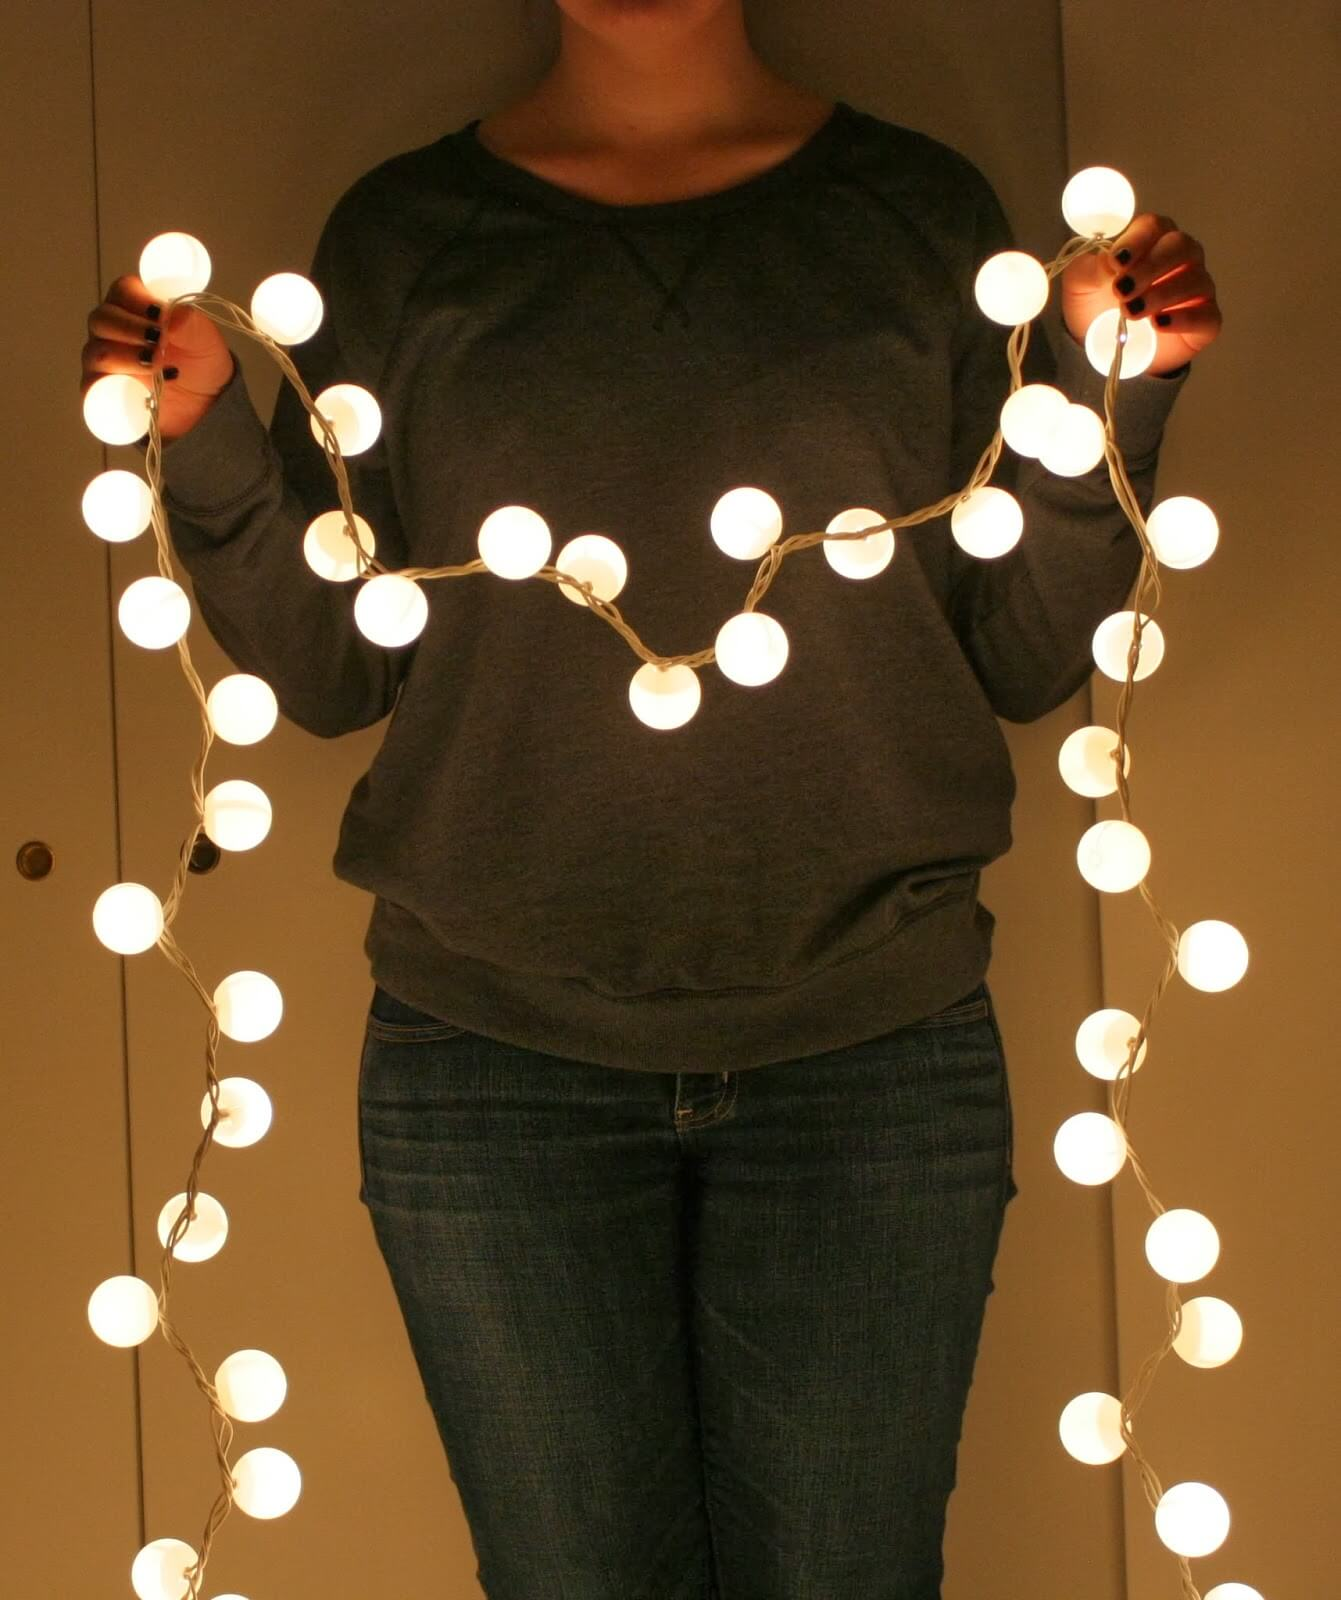 Super easy a just magical when complete - Ping Pong Fairy Lights